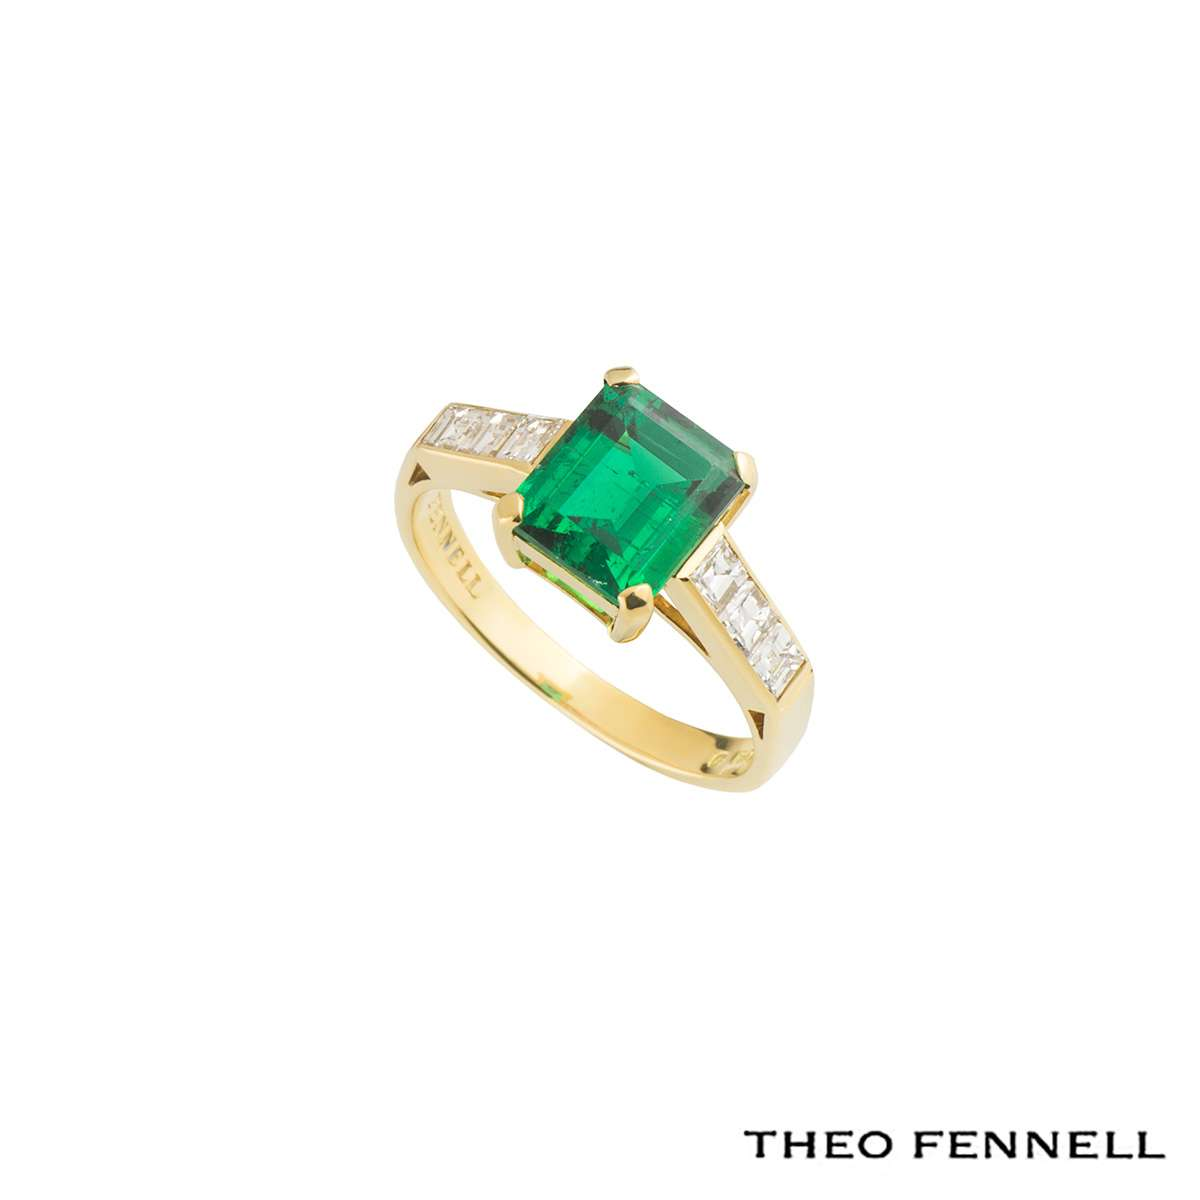 Theo Fennell Emerald and Diamond Ring